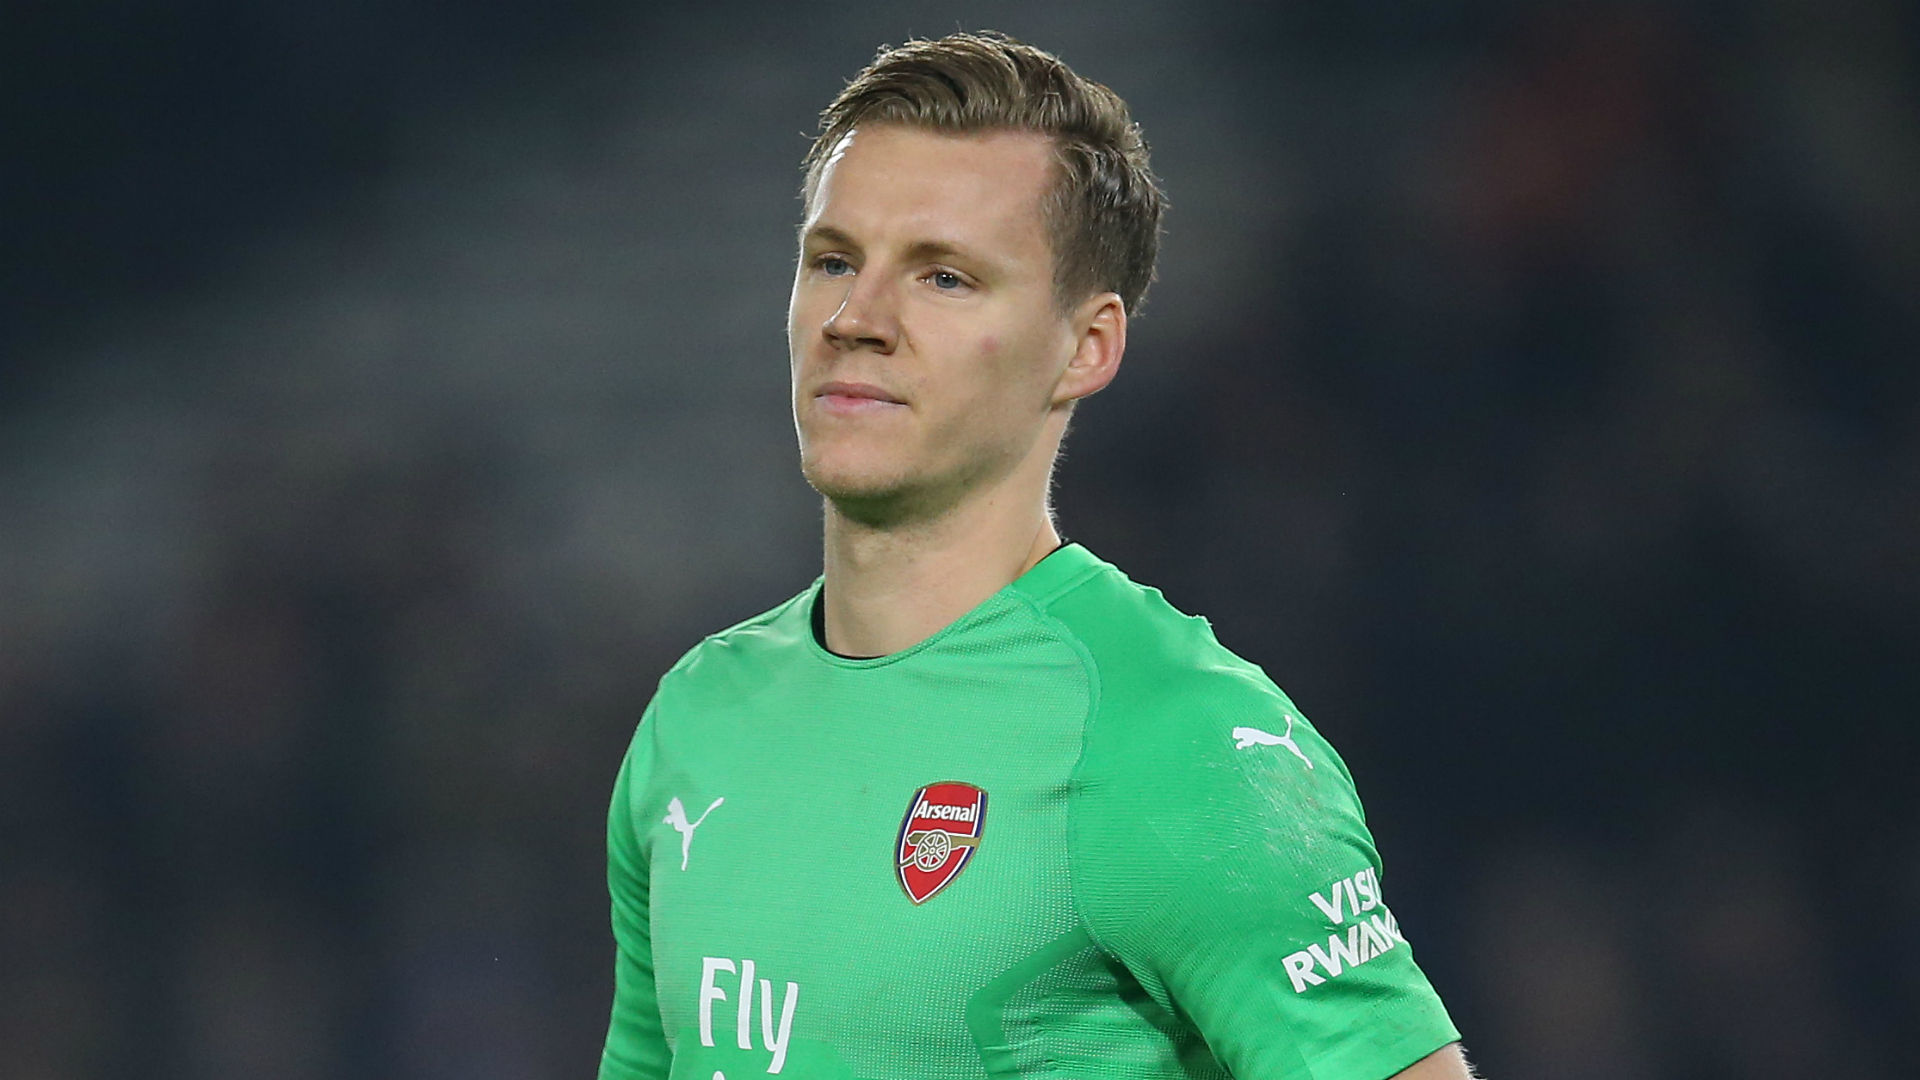 Arsenal News: Bernd Leno Reveals He Needed Time To Adapt